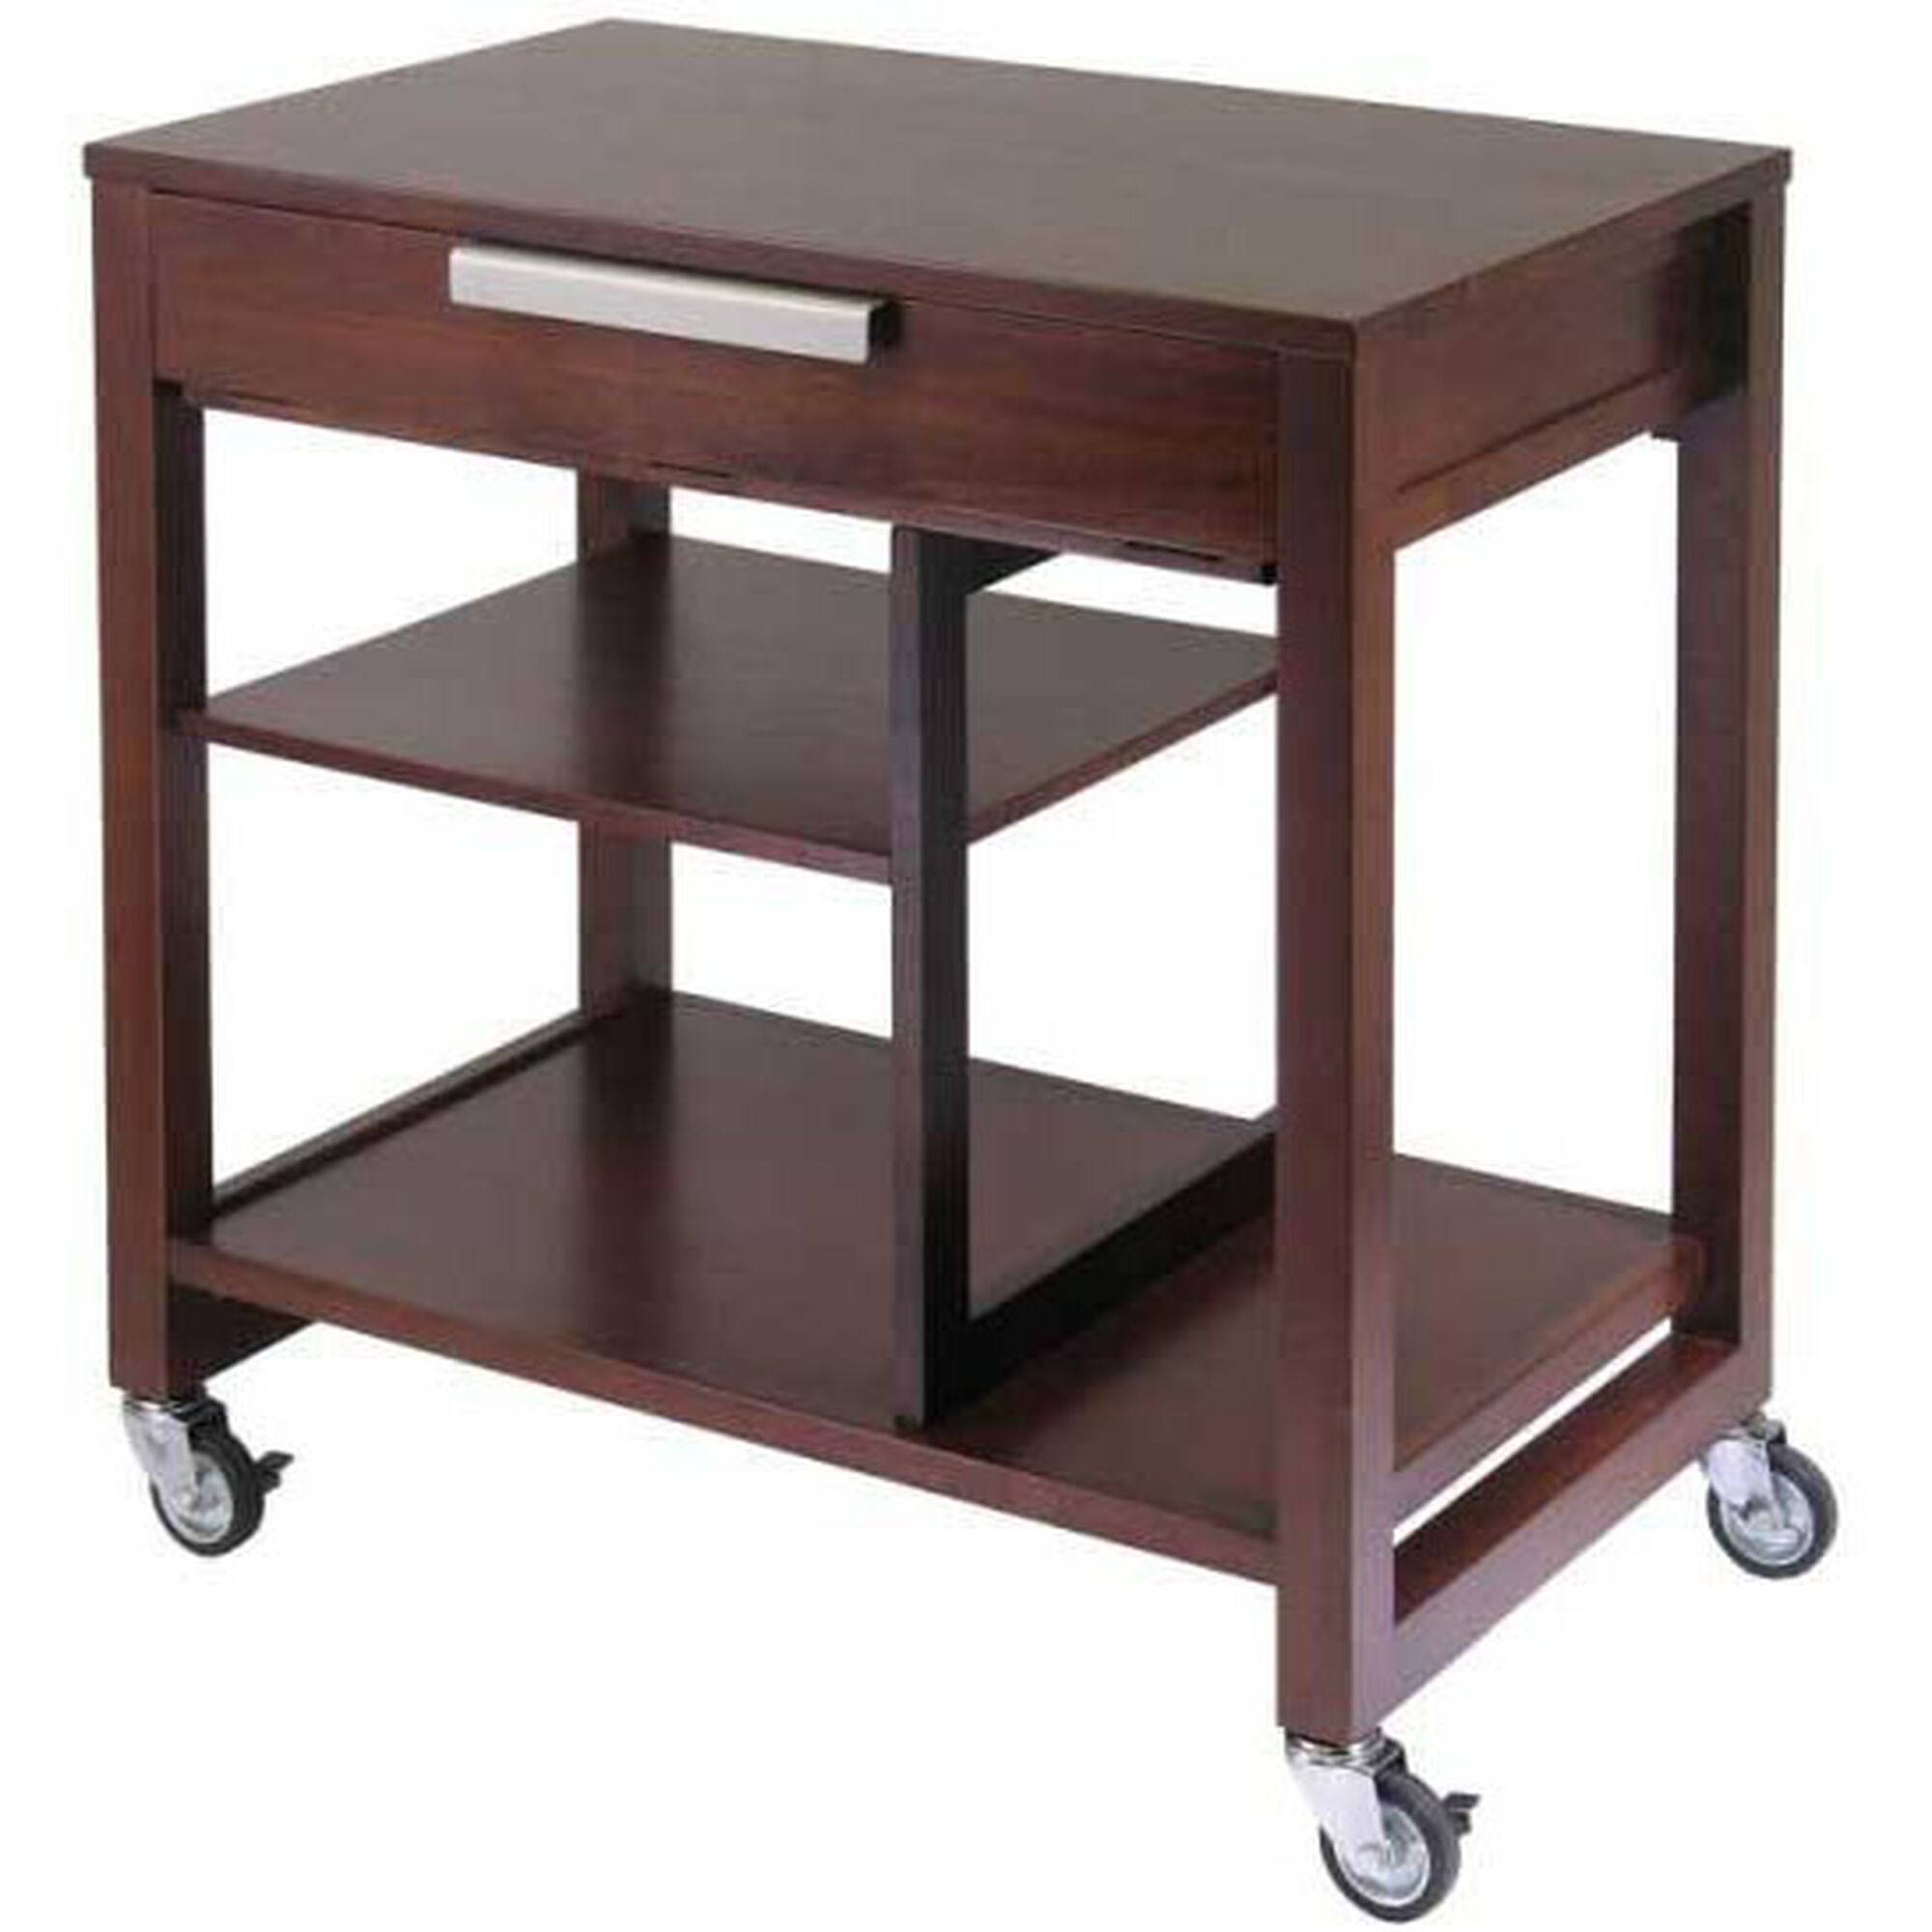 Our Computer Desk With Wheels Is On Sale Now